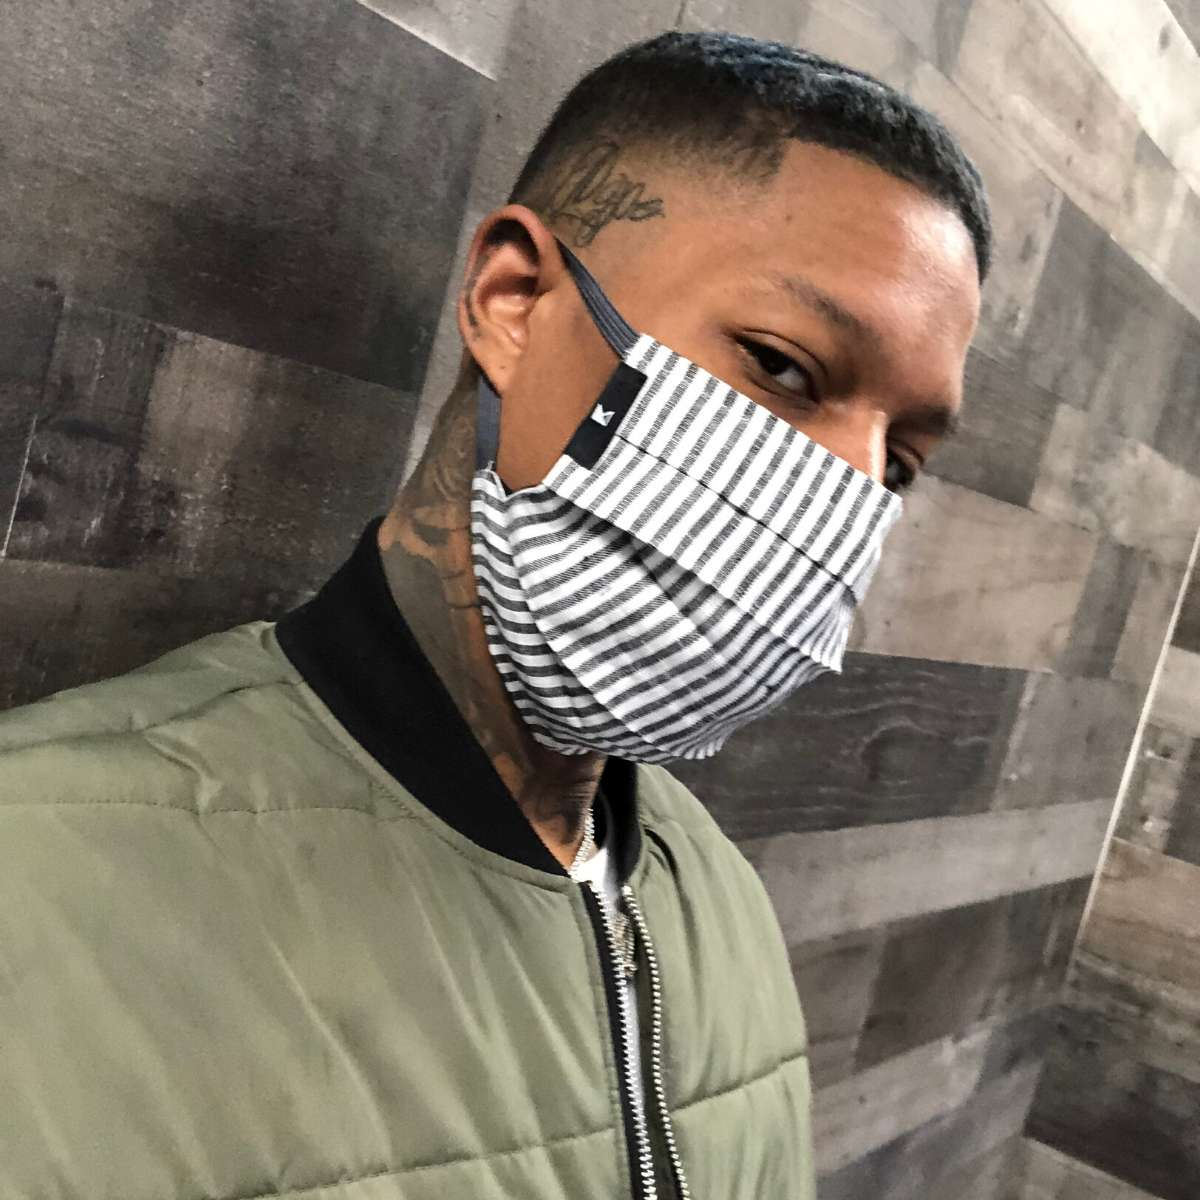 You know the vibes... shop this dope mask and stay safe